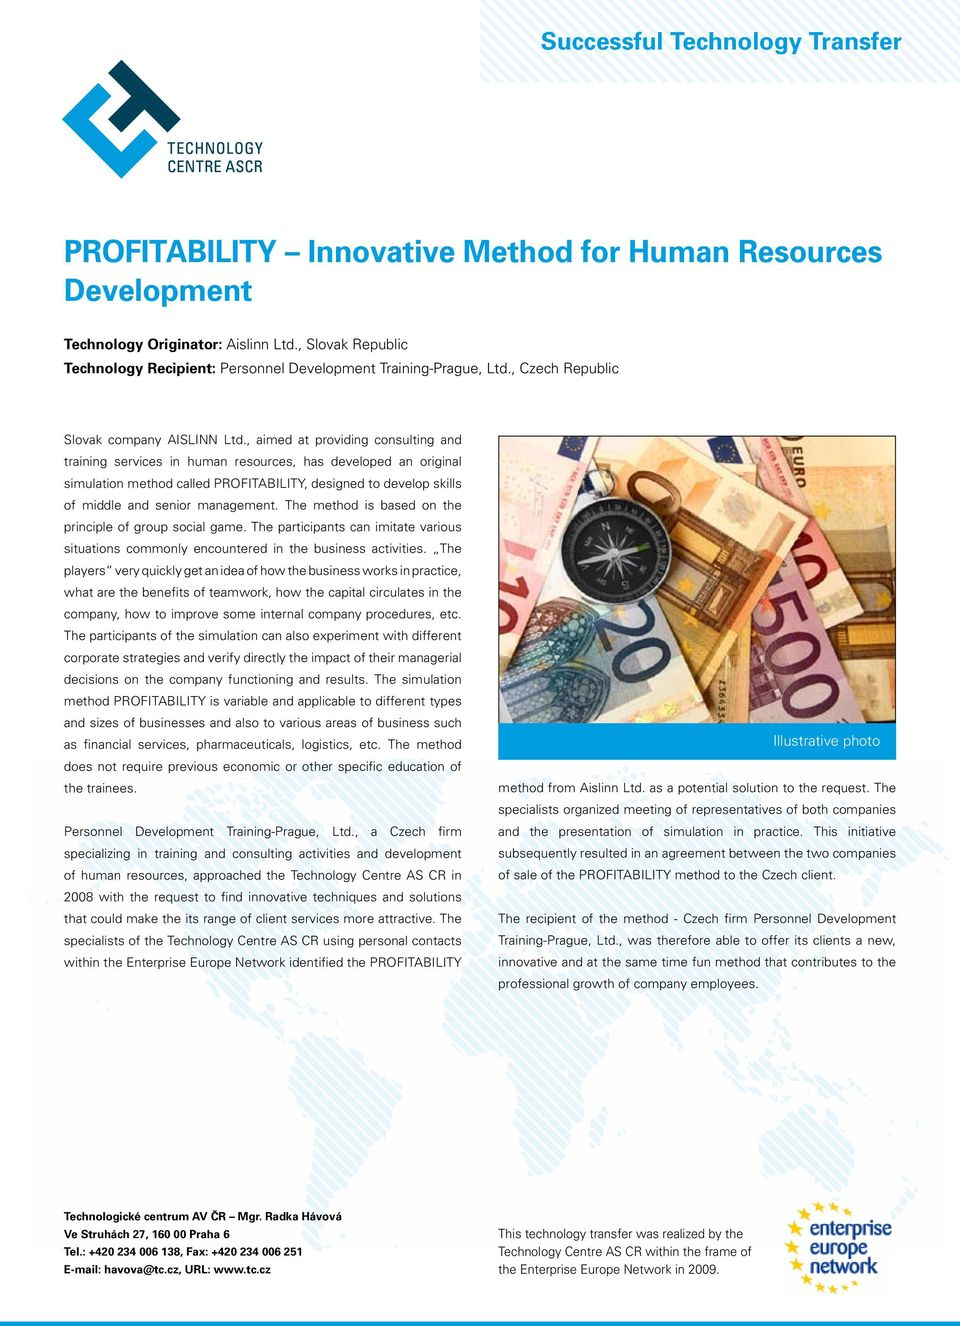 , aimed at providing consulting and training services in human resources, has developed an original simulation method called PROFITABILITY, designed to develop skills of middle and senior management.